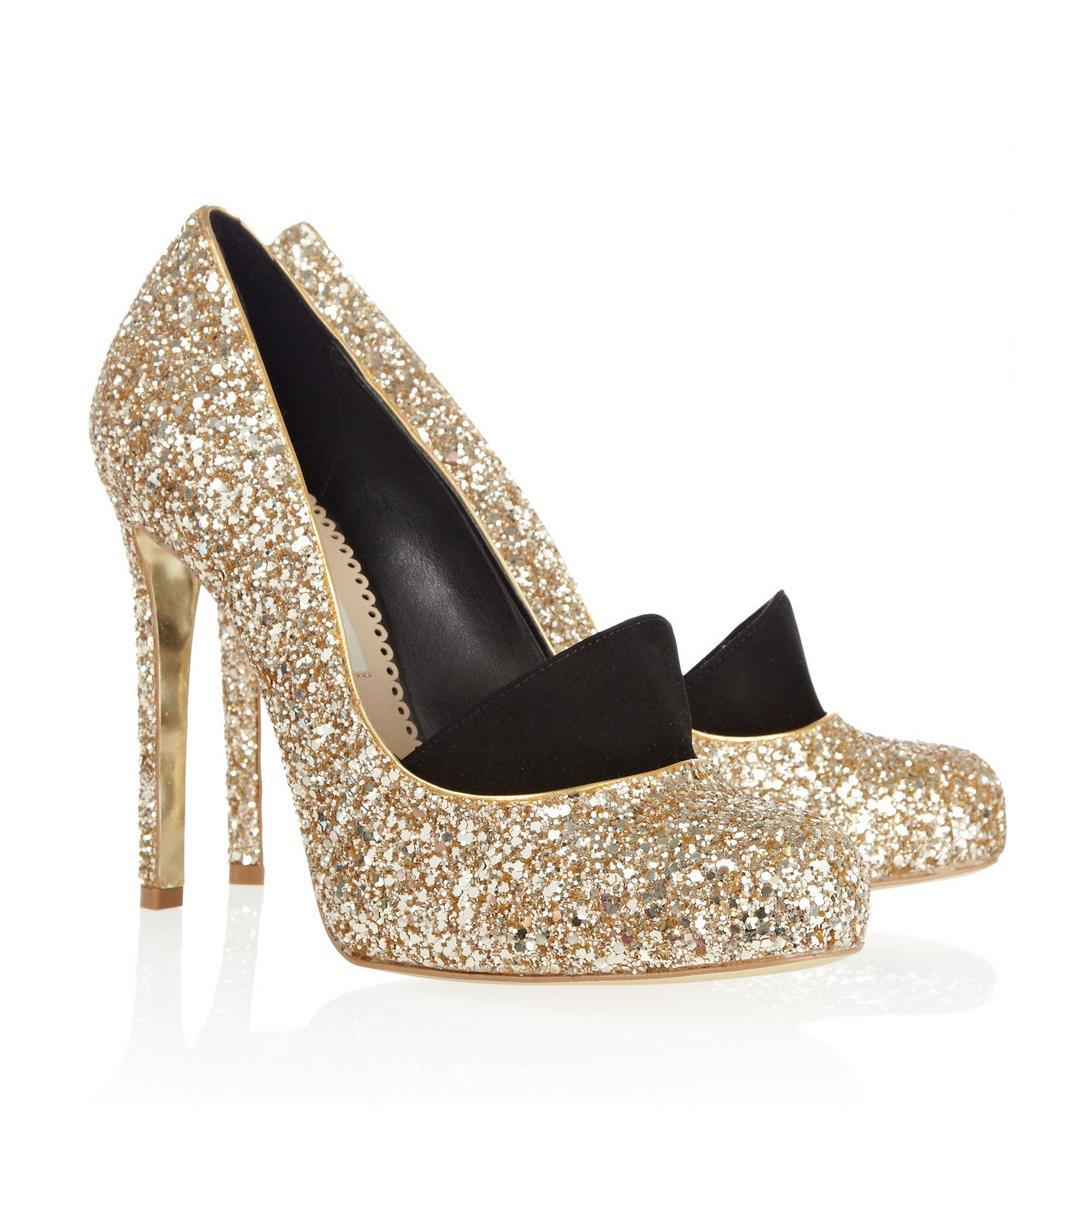 STELLA MCCARTNEY, Glitter-finished faux leather pumps